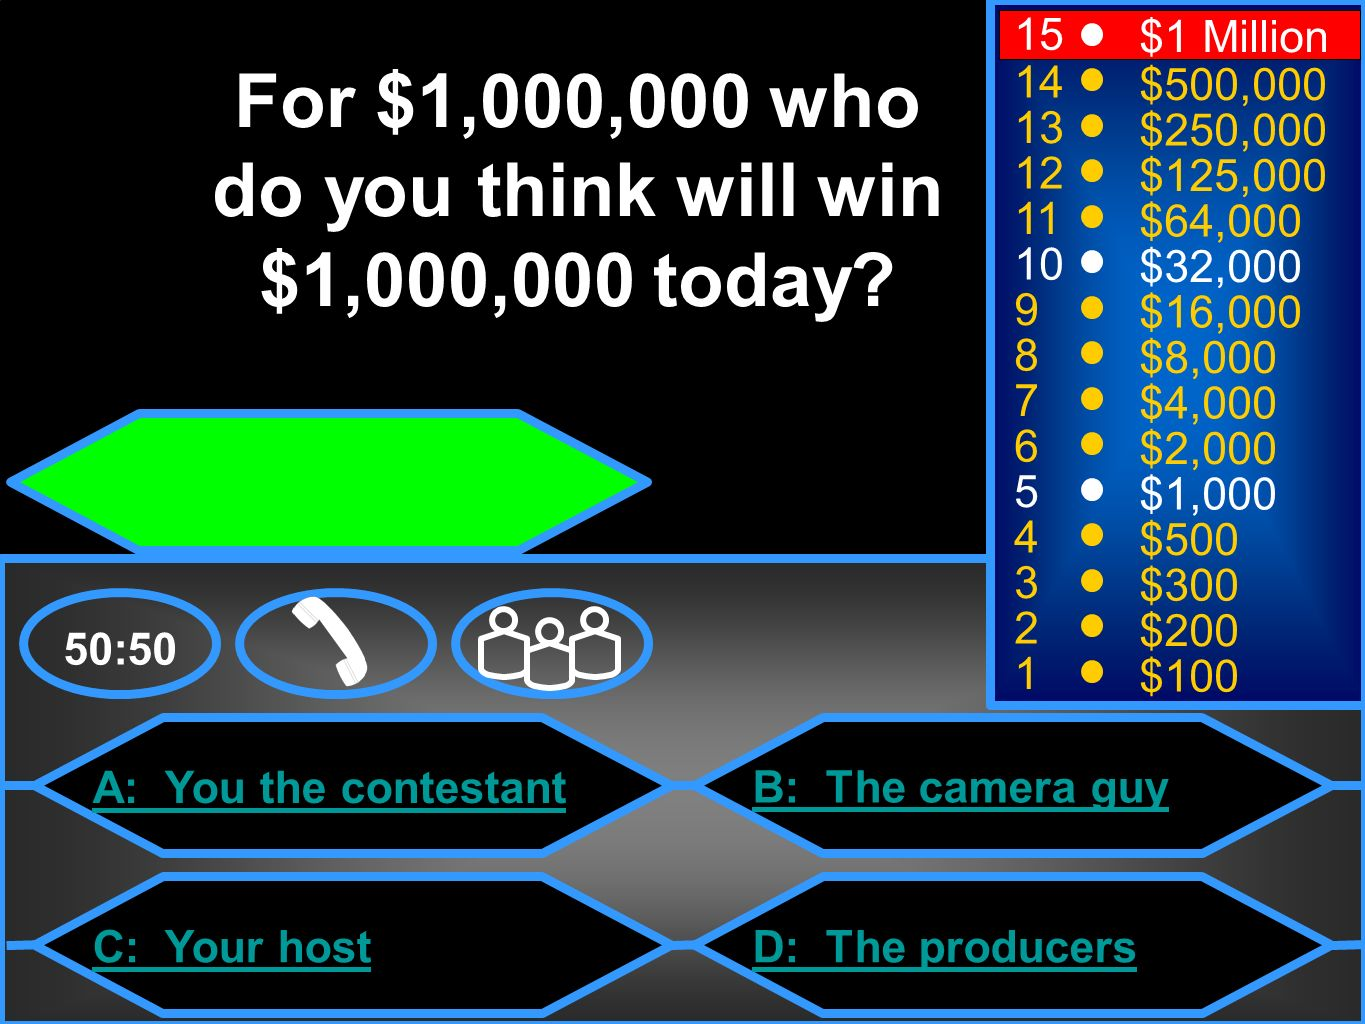 A: You the contestant C: Your host B: The camera guy D: The producers 50:50 15 14 13 12 11 10 9 8 7 6 5 4 3 2 1 $1 Million $500,000 $250,000 $125,000